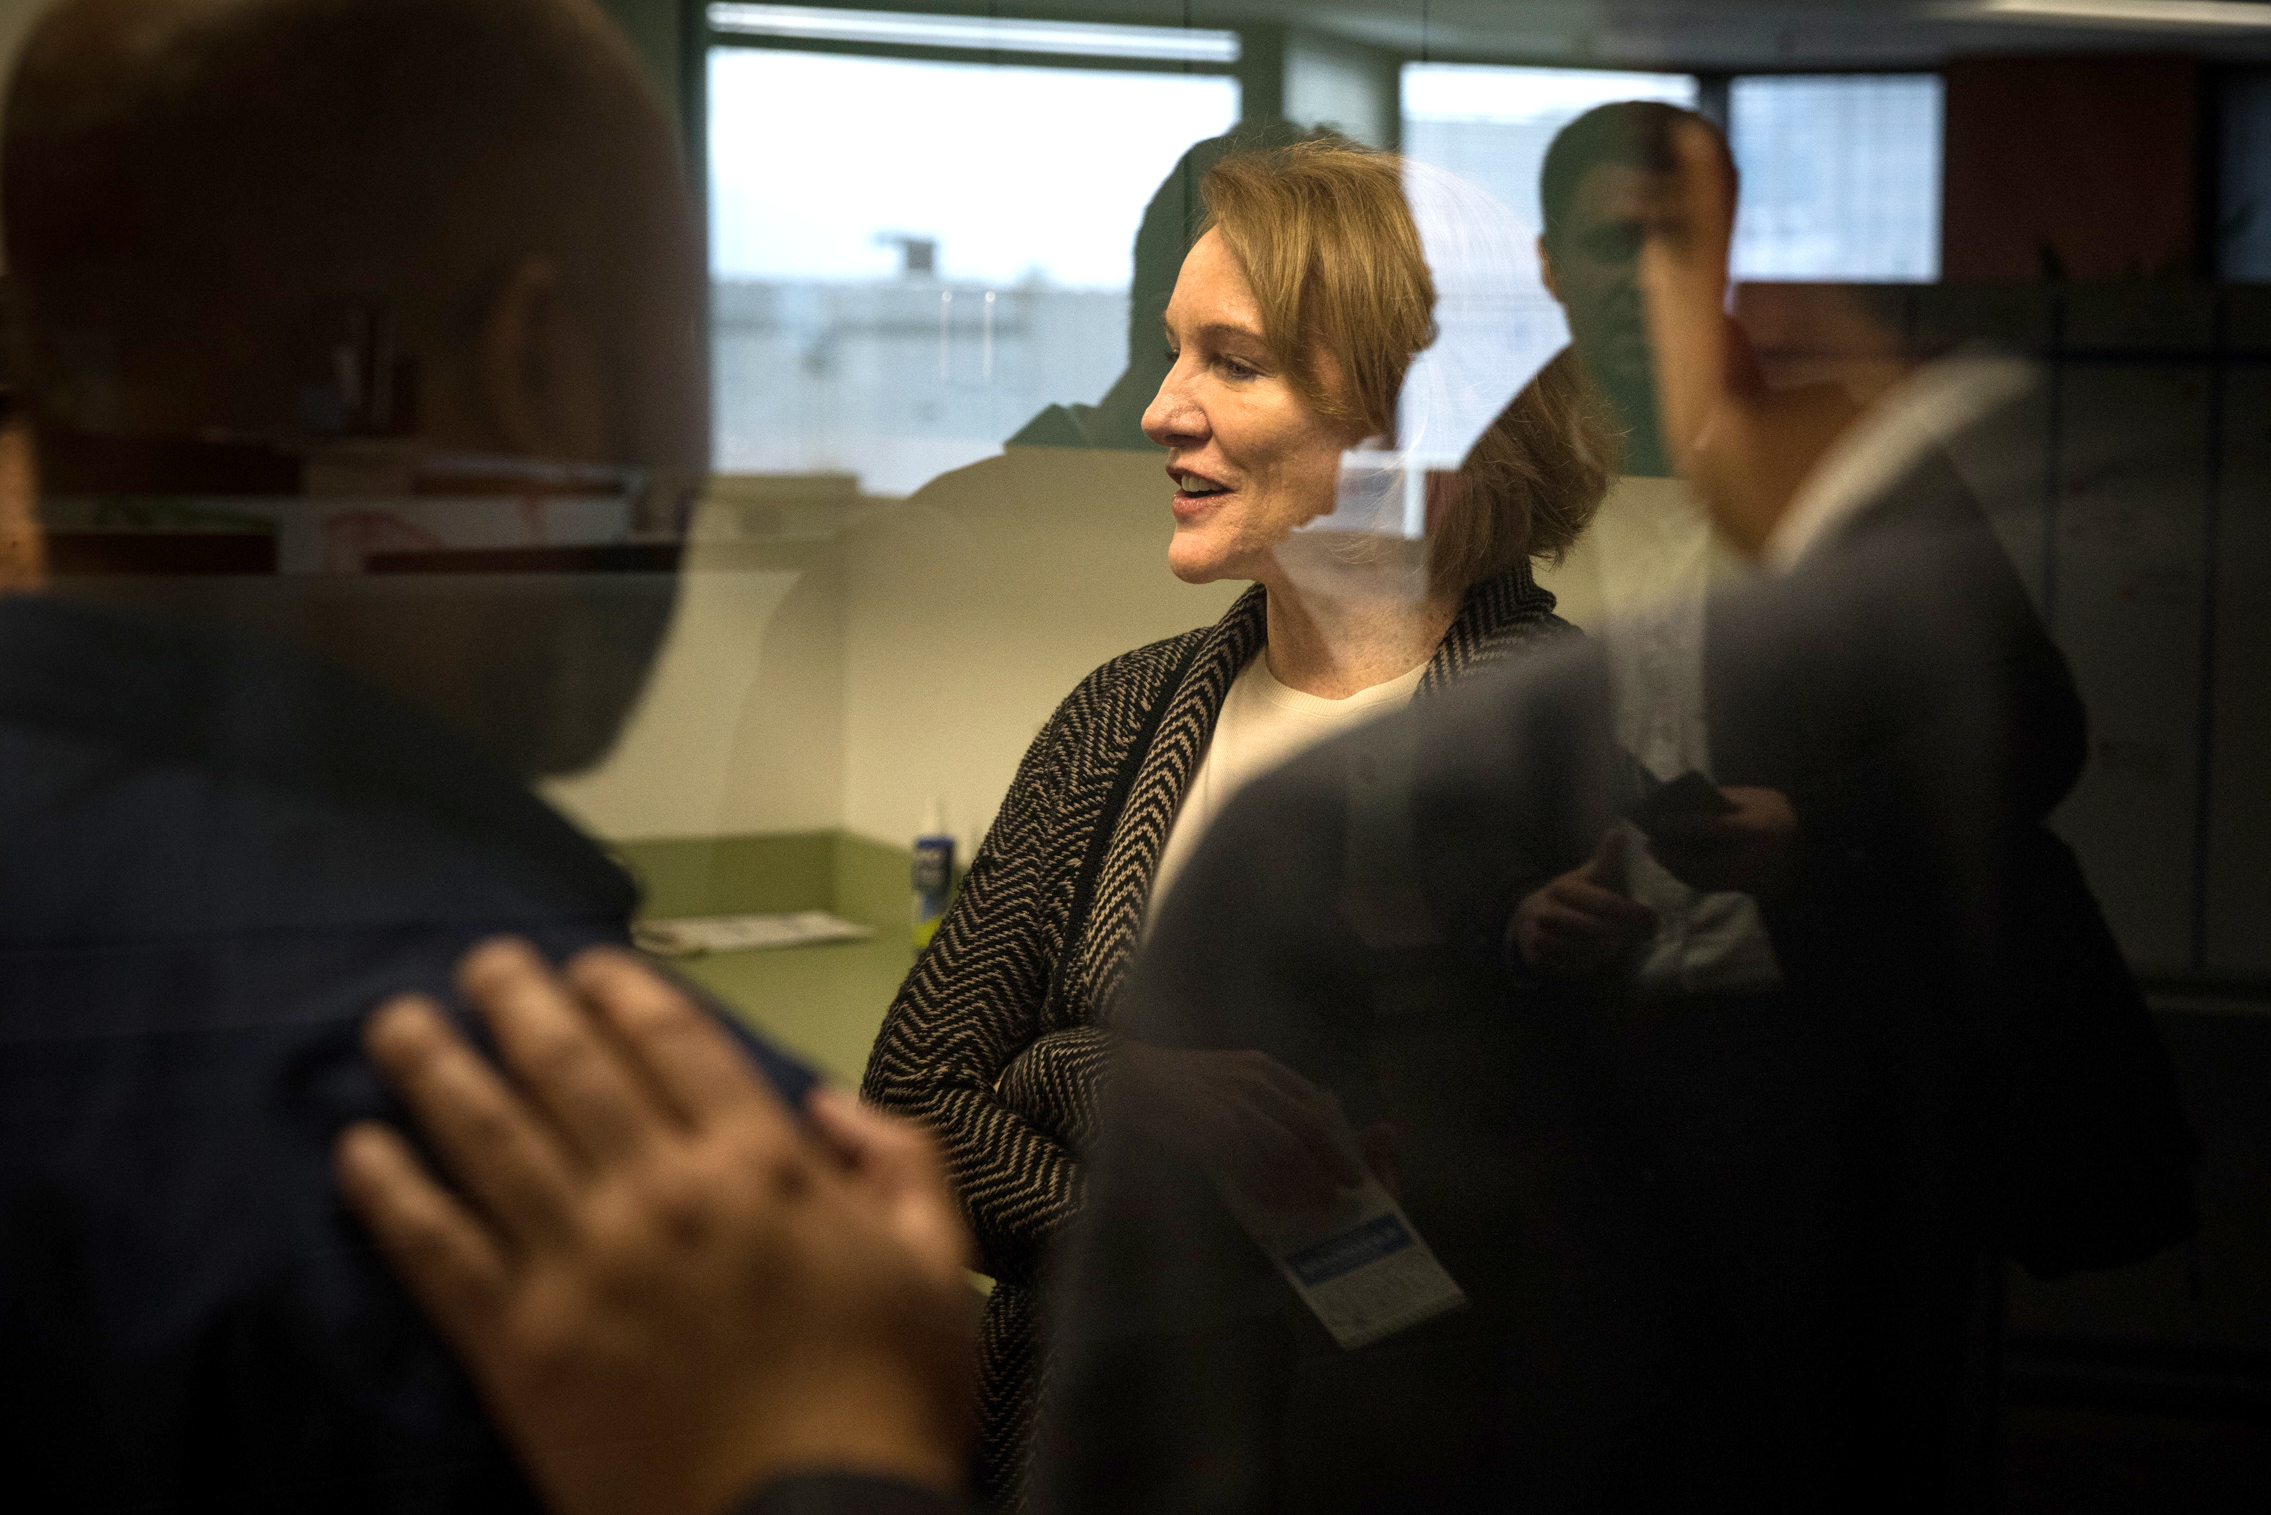 Mayor Jenny Durkan connects with employees at the Department of Education and Early Learning in Seattle Municipal Tower